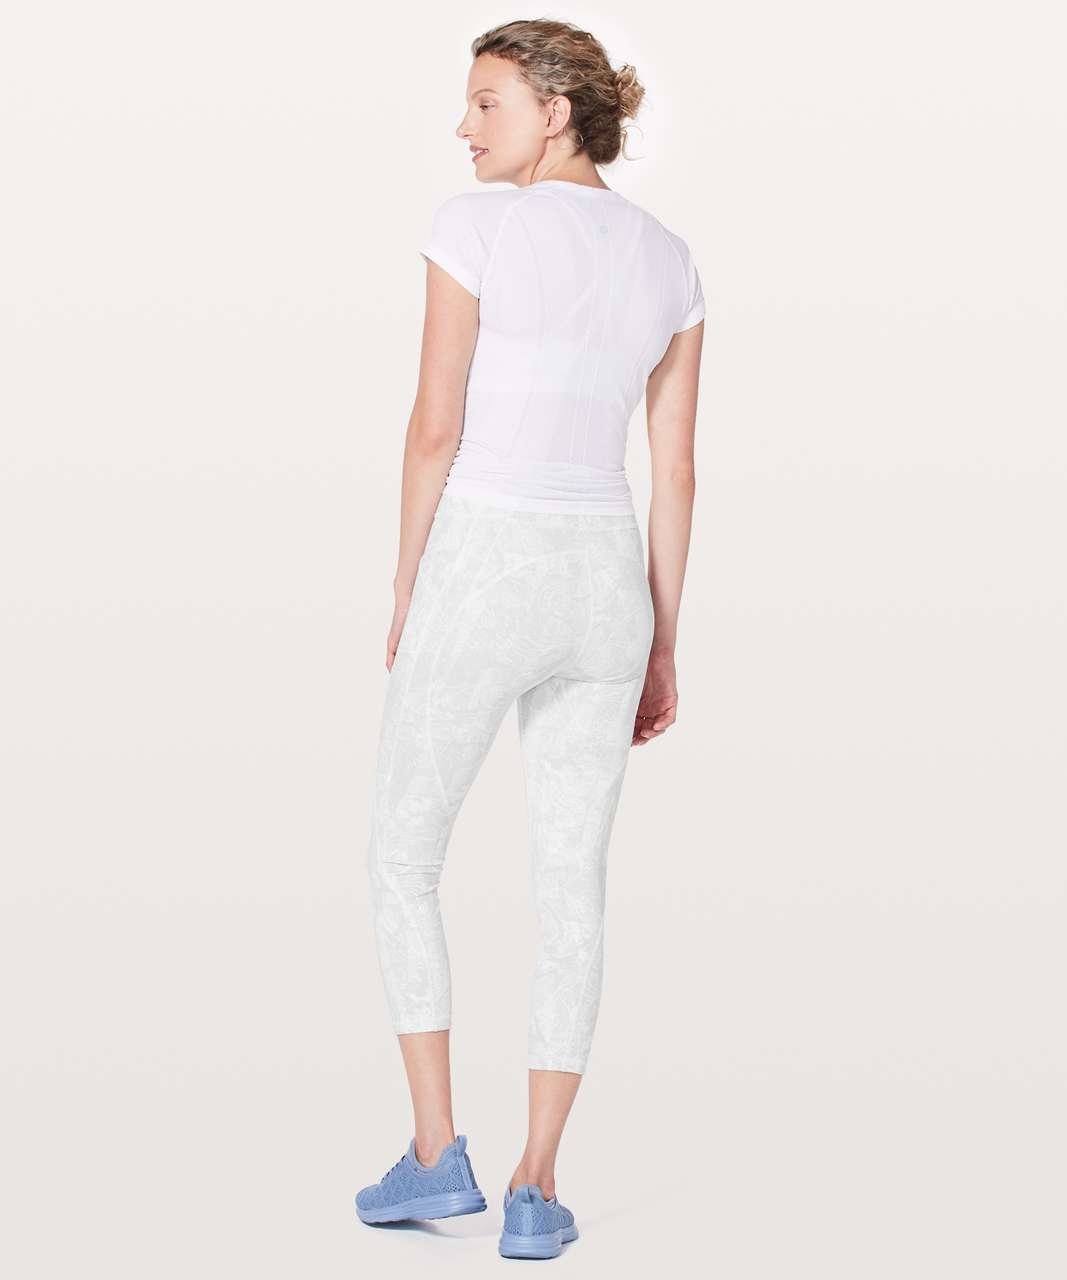 "Lululemon Time To Sweat Crop *23"" - Eternal Wave White"